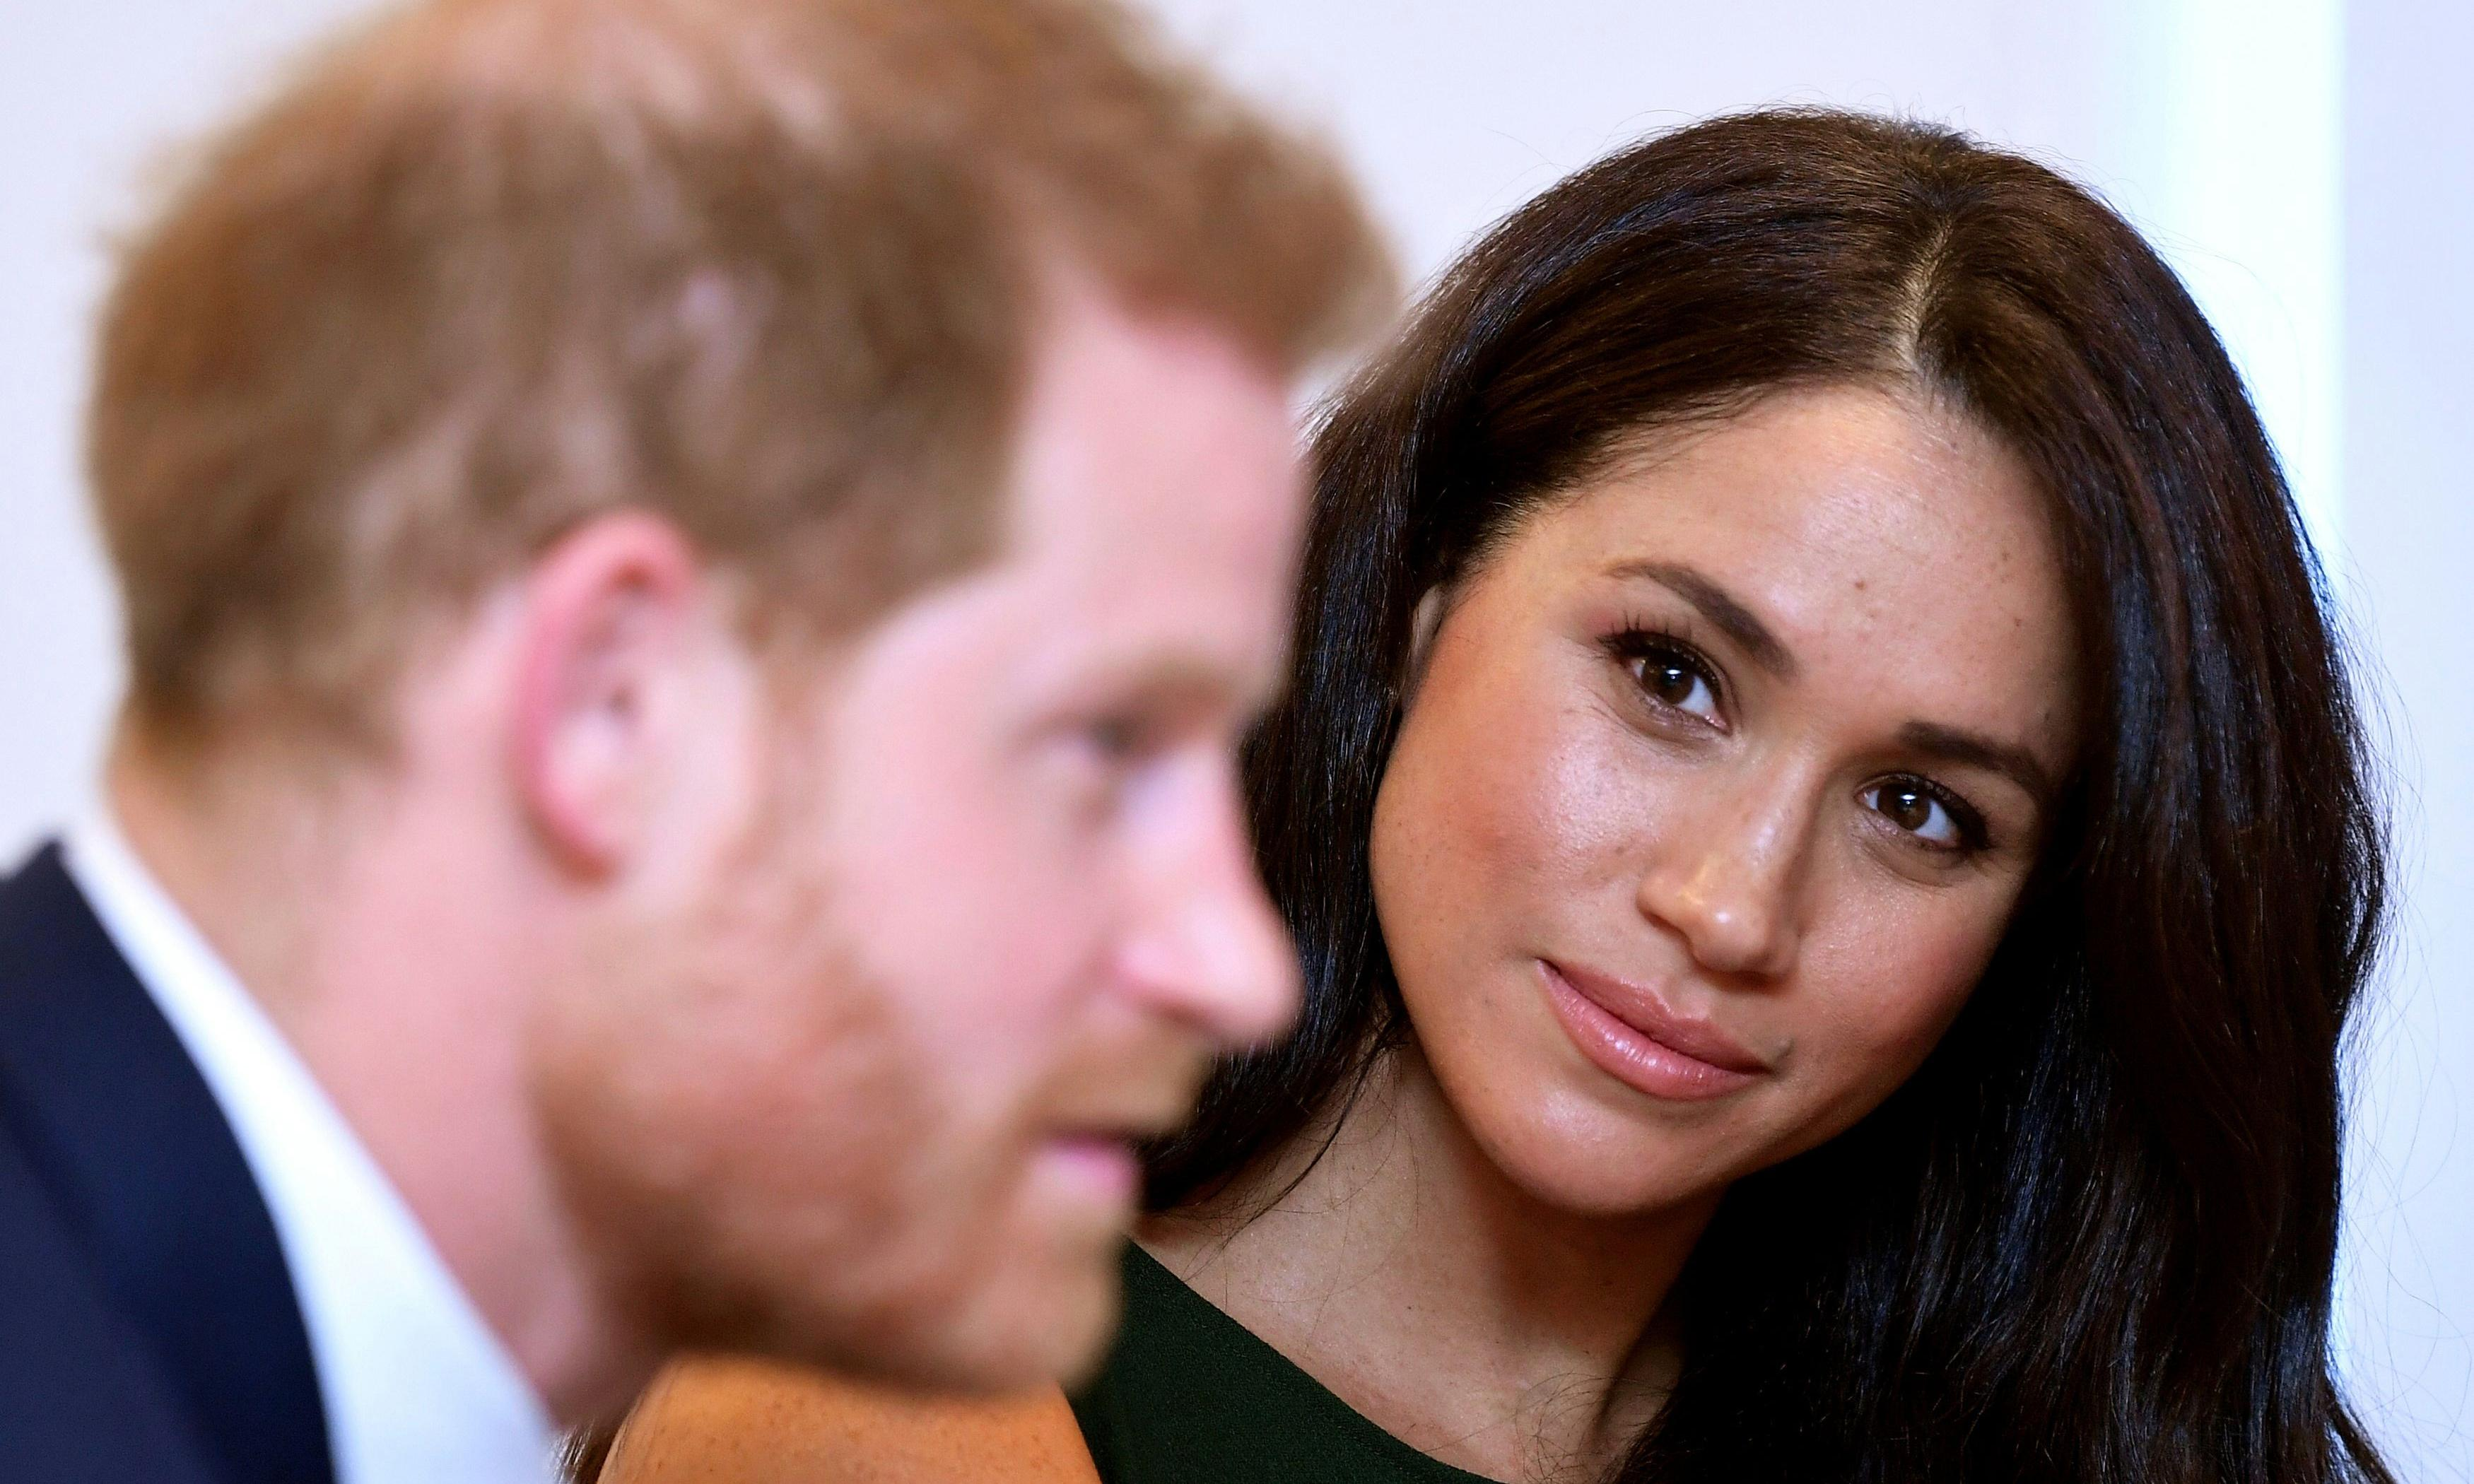 For Harry and Meghan, Canadian media's respect for privacy is good news